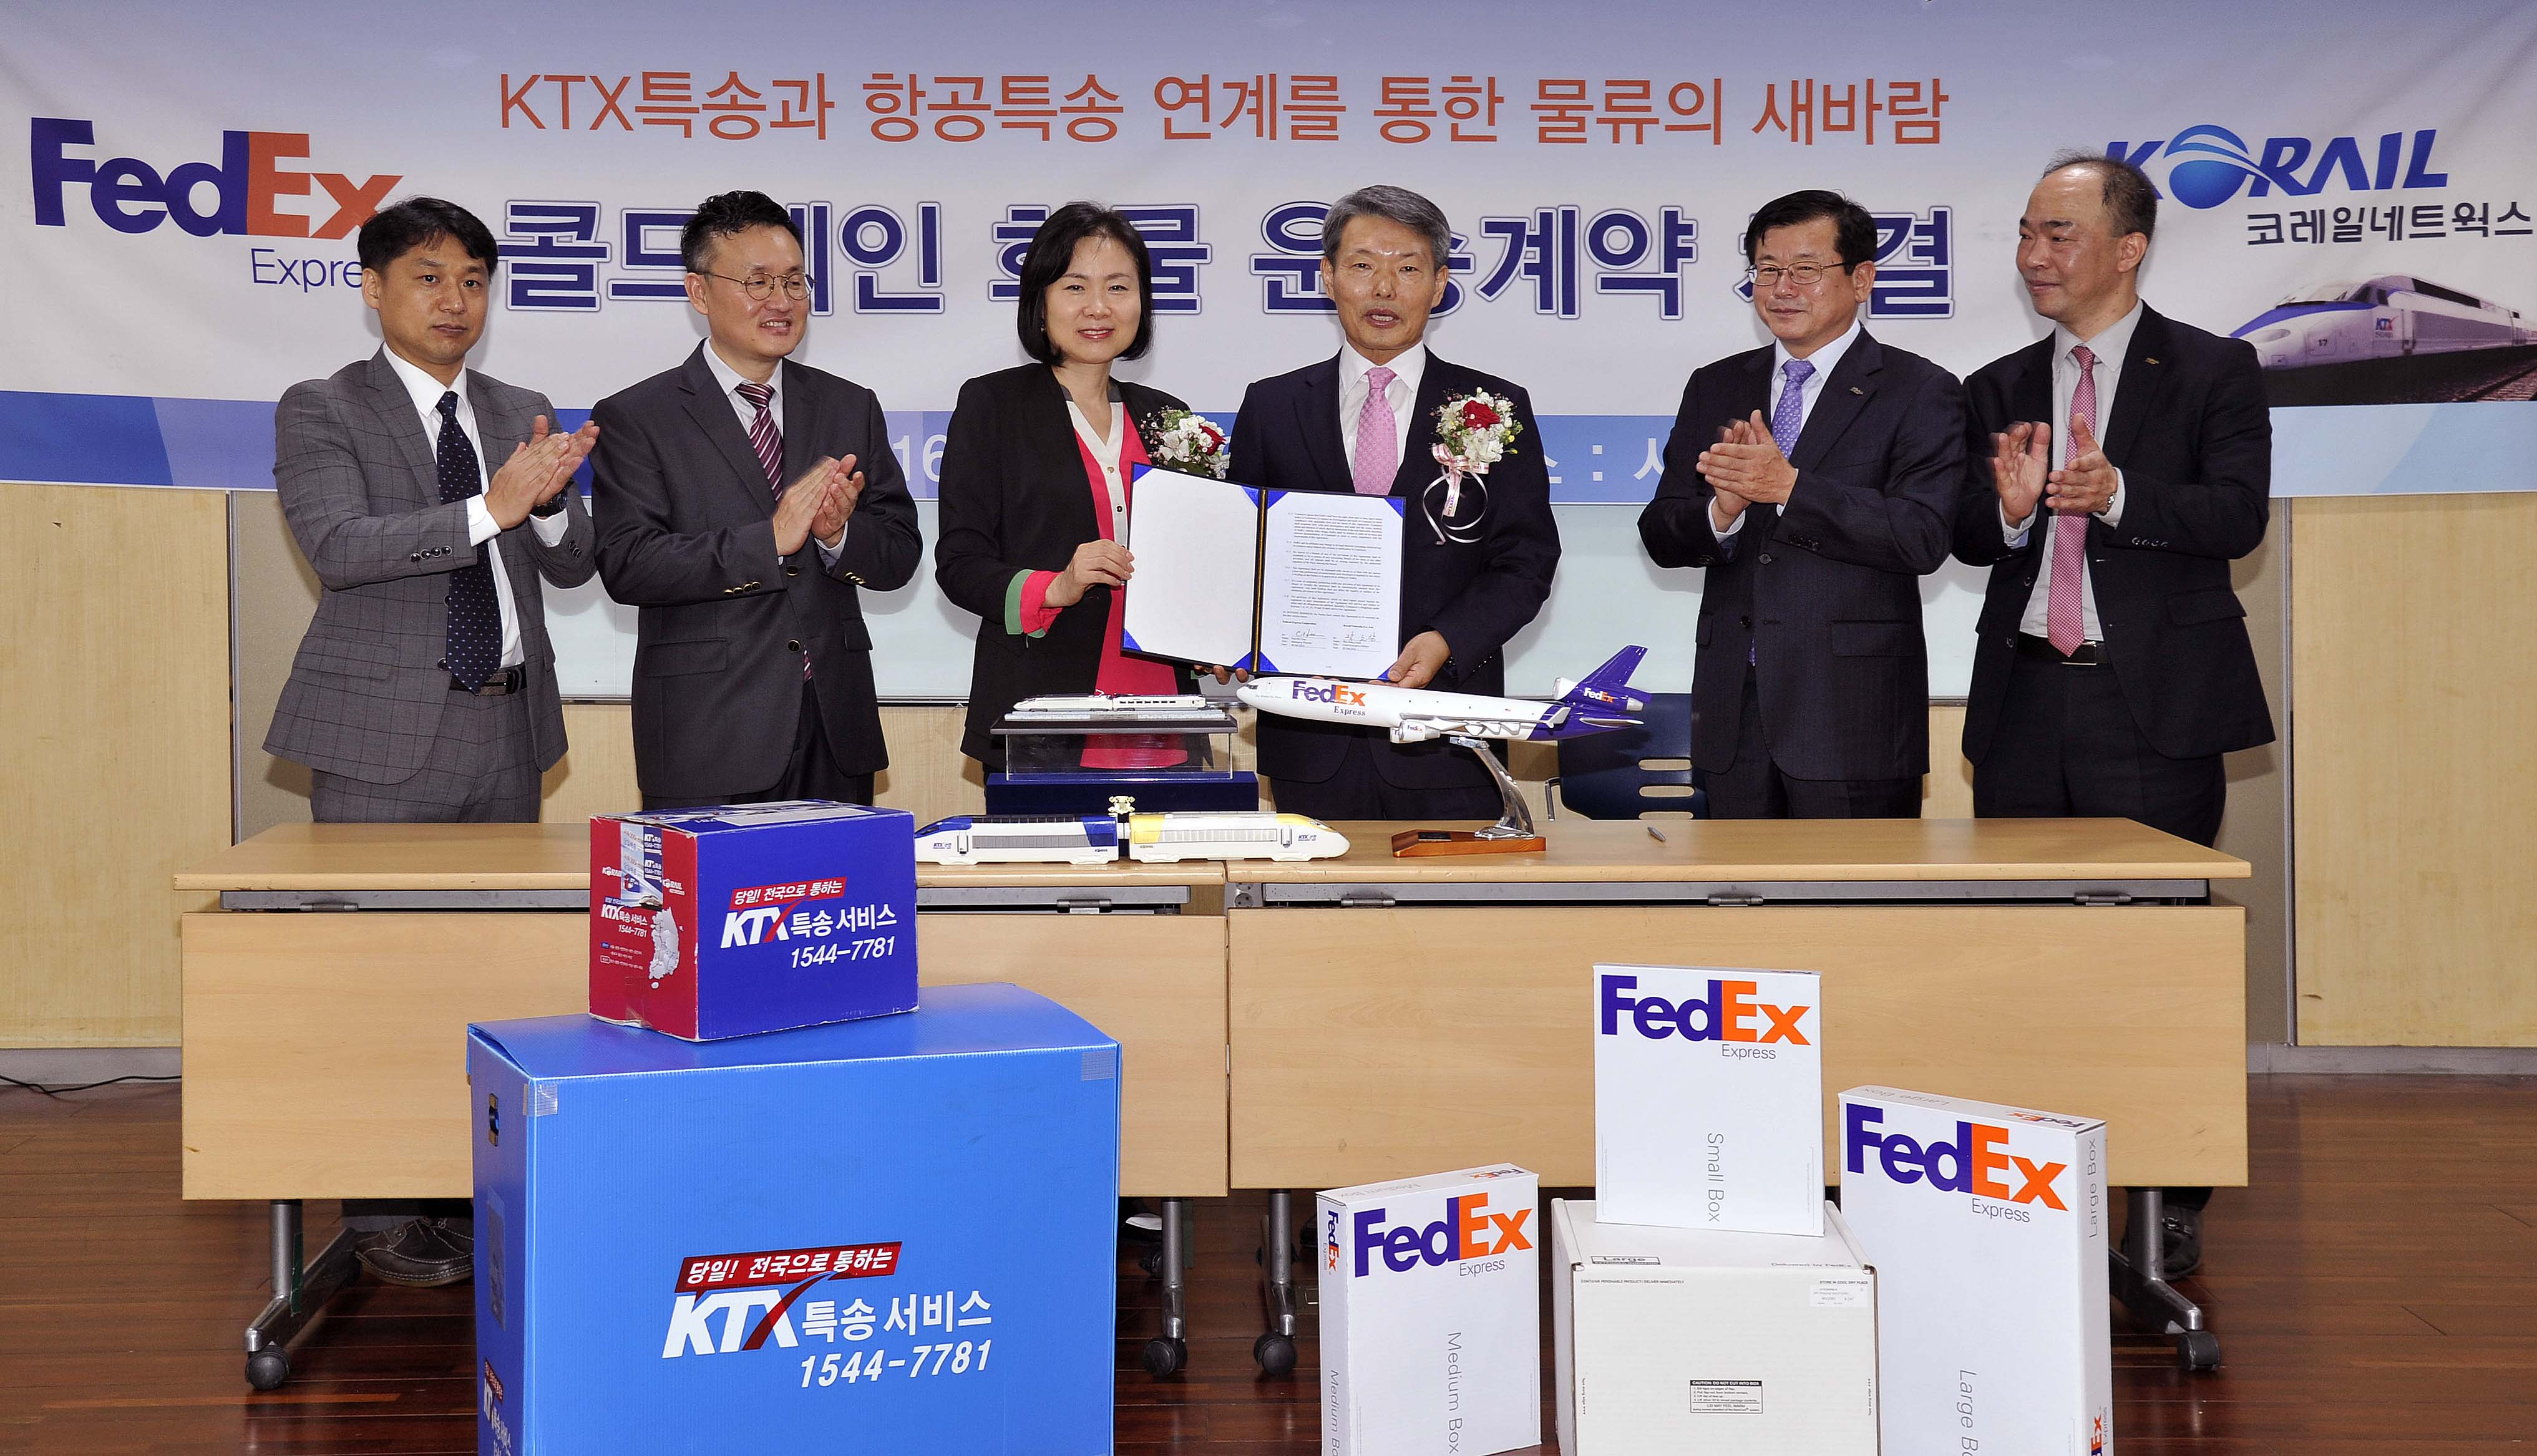 FedEx working with Korail Networks for healthcare shipments